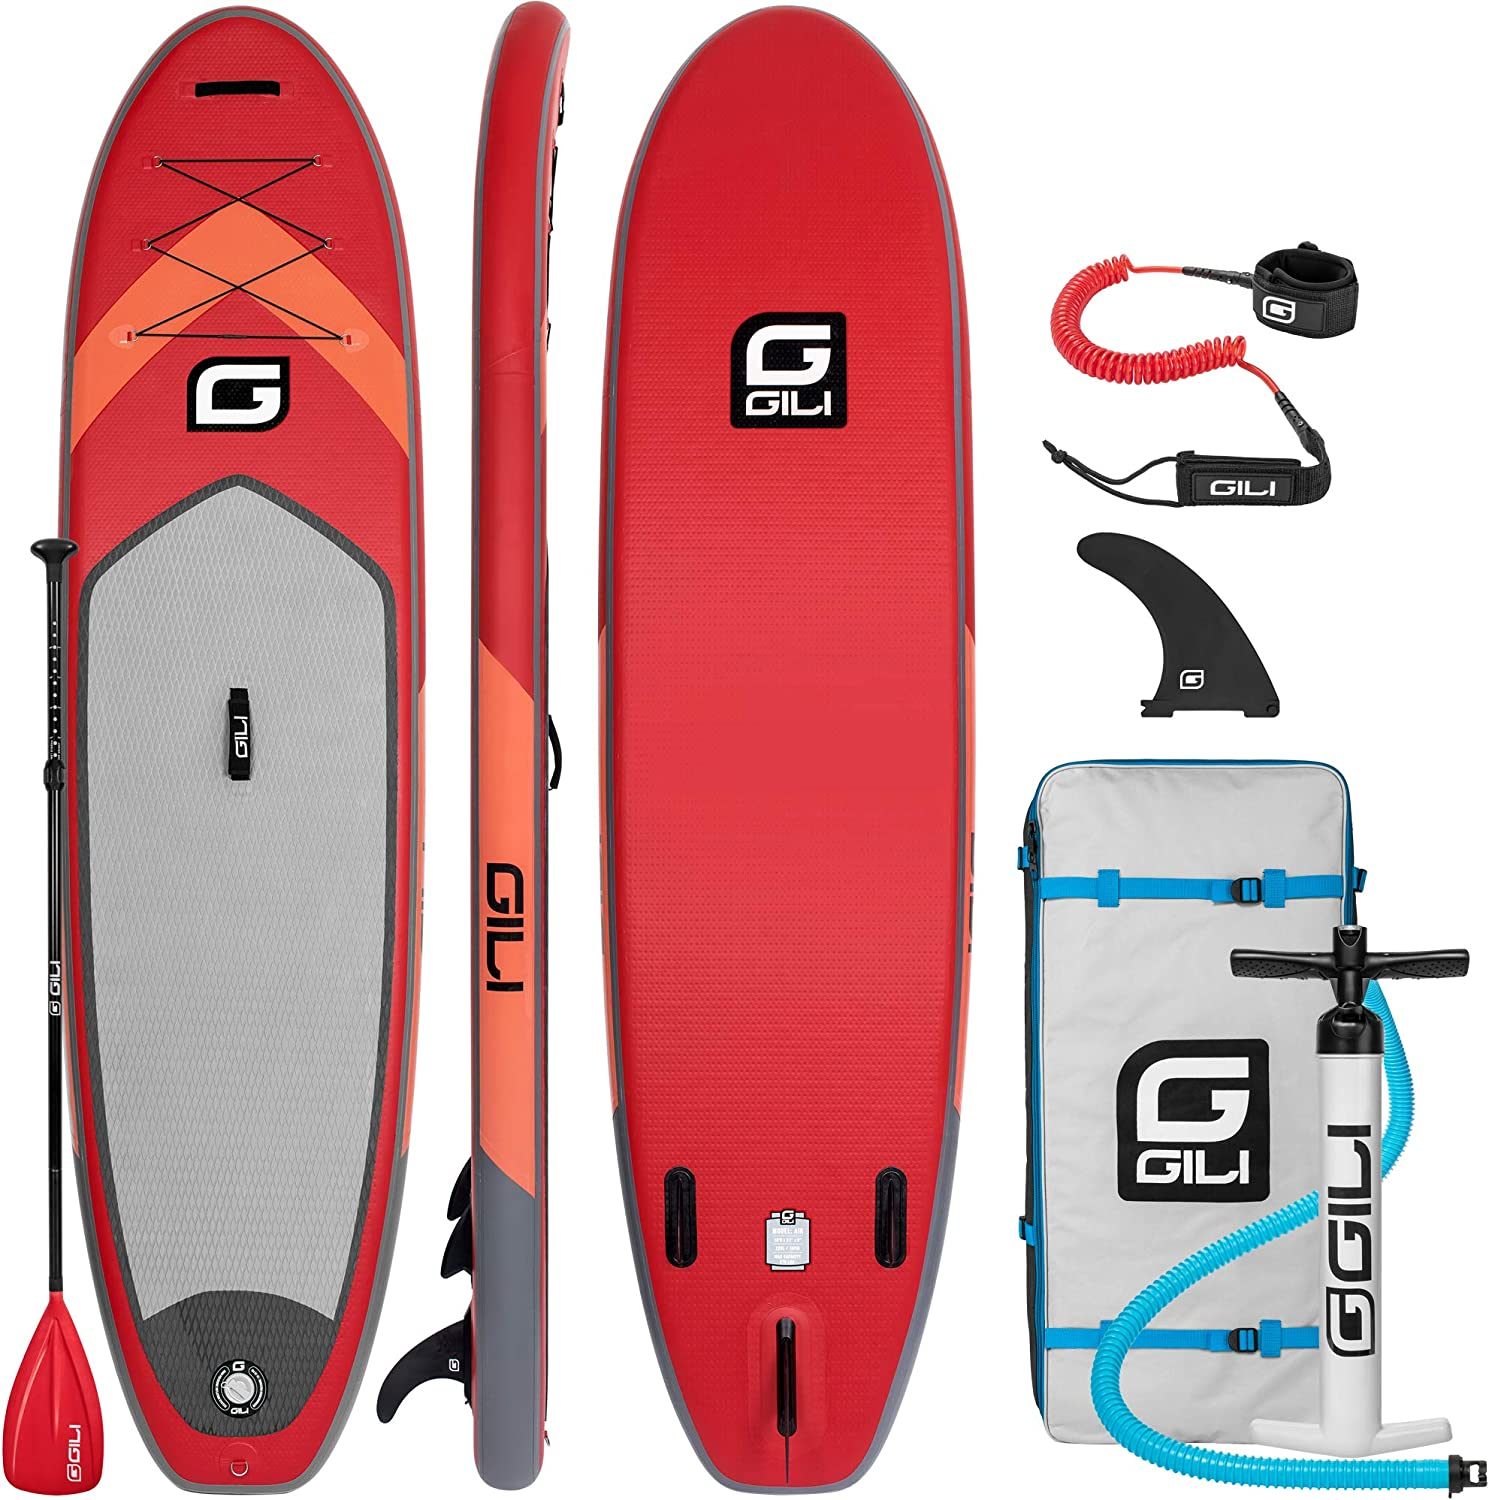 GILI All Around Inflatable Stand Up Paddle Board Package | 106 Long x 31